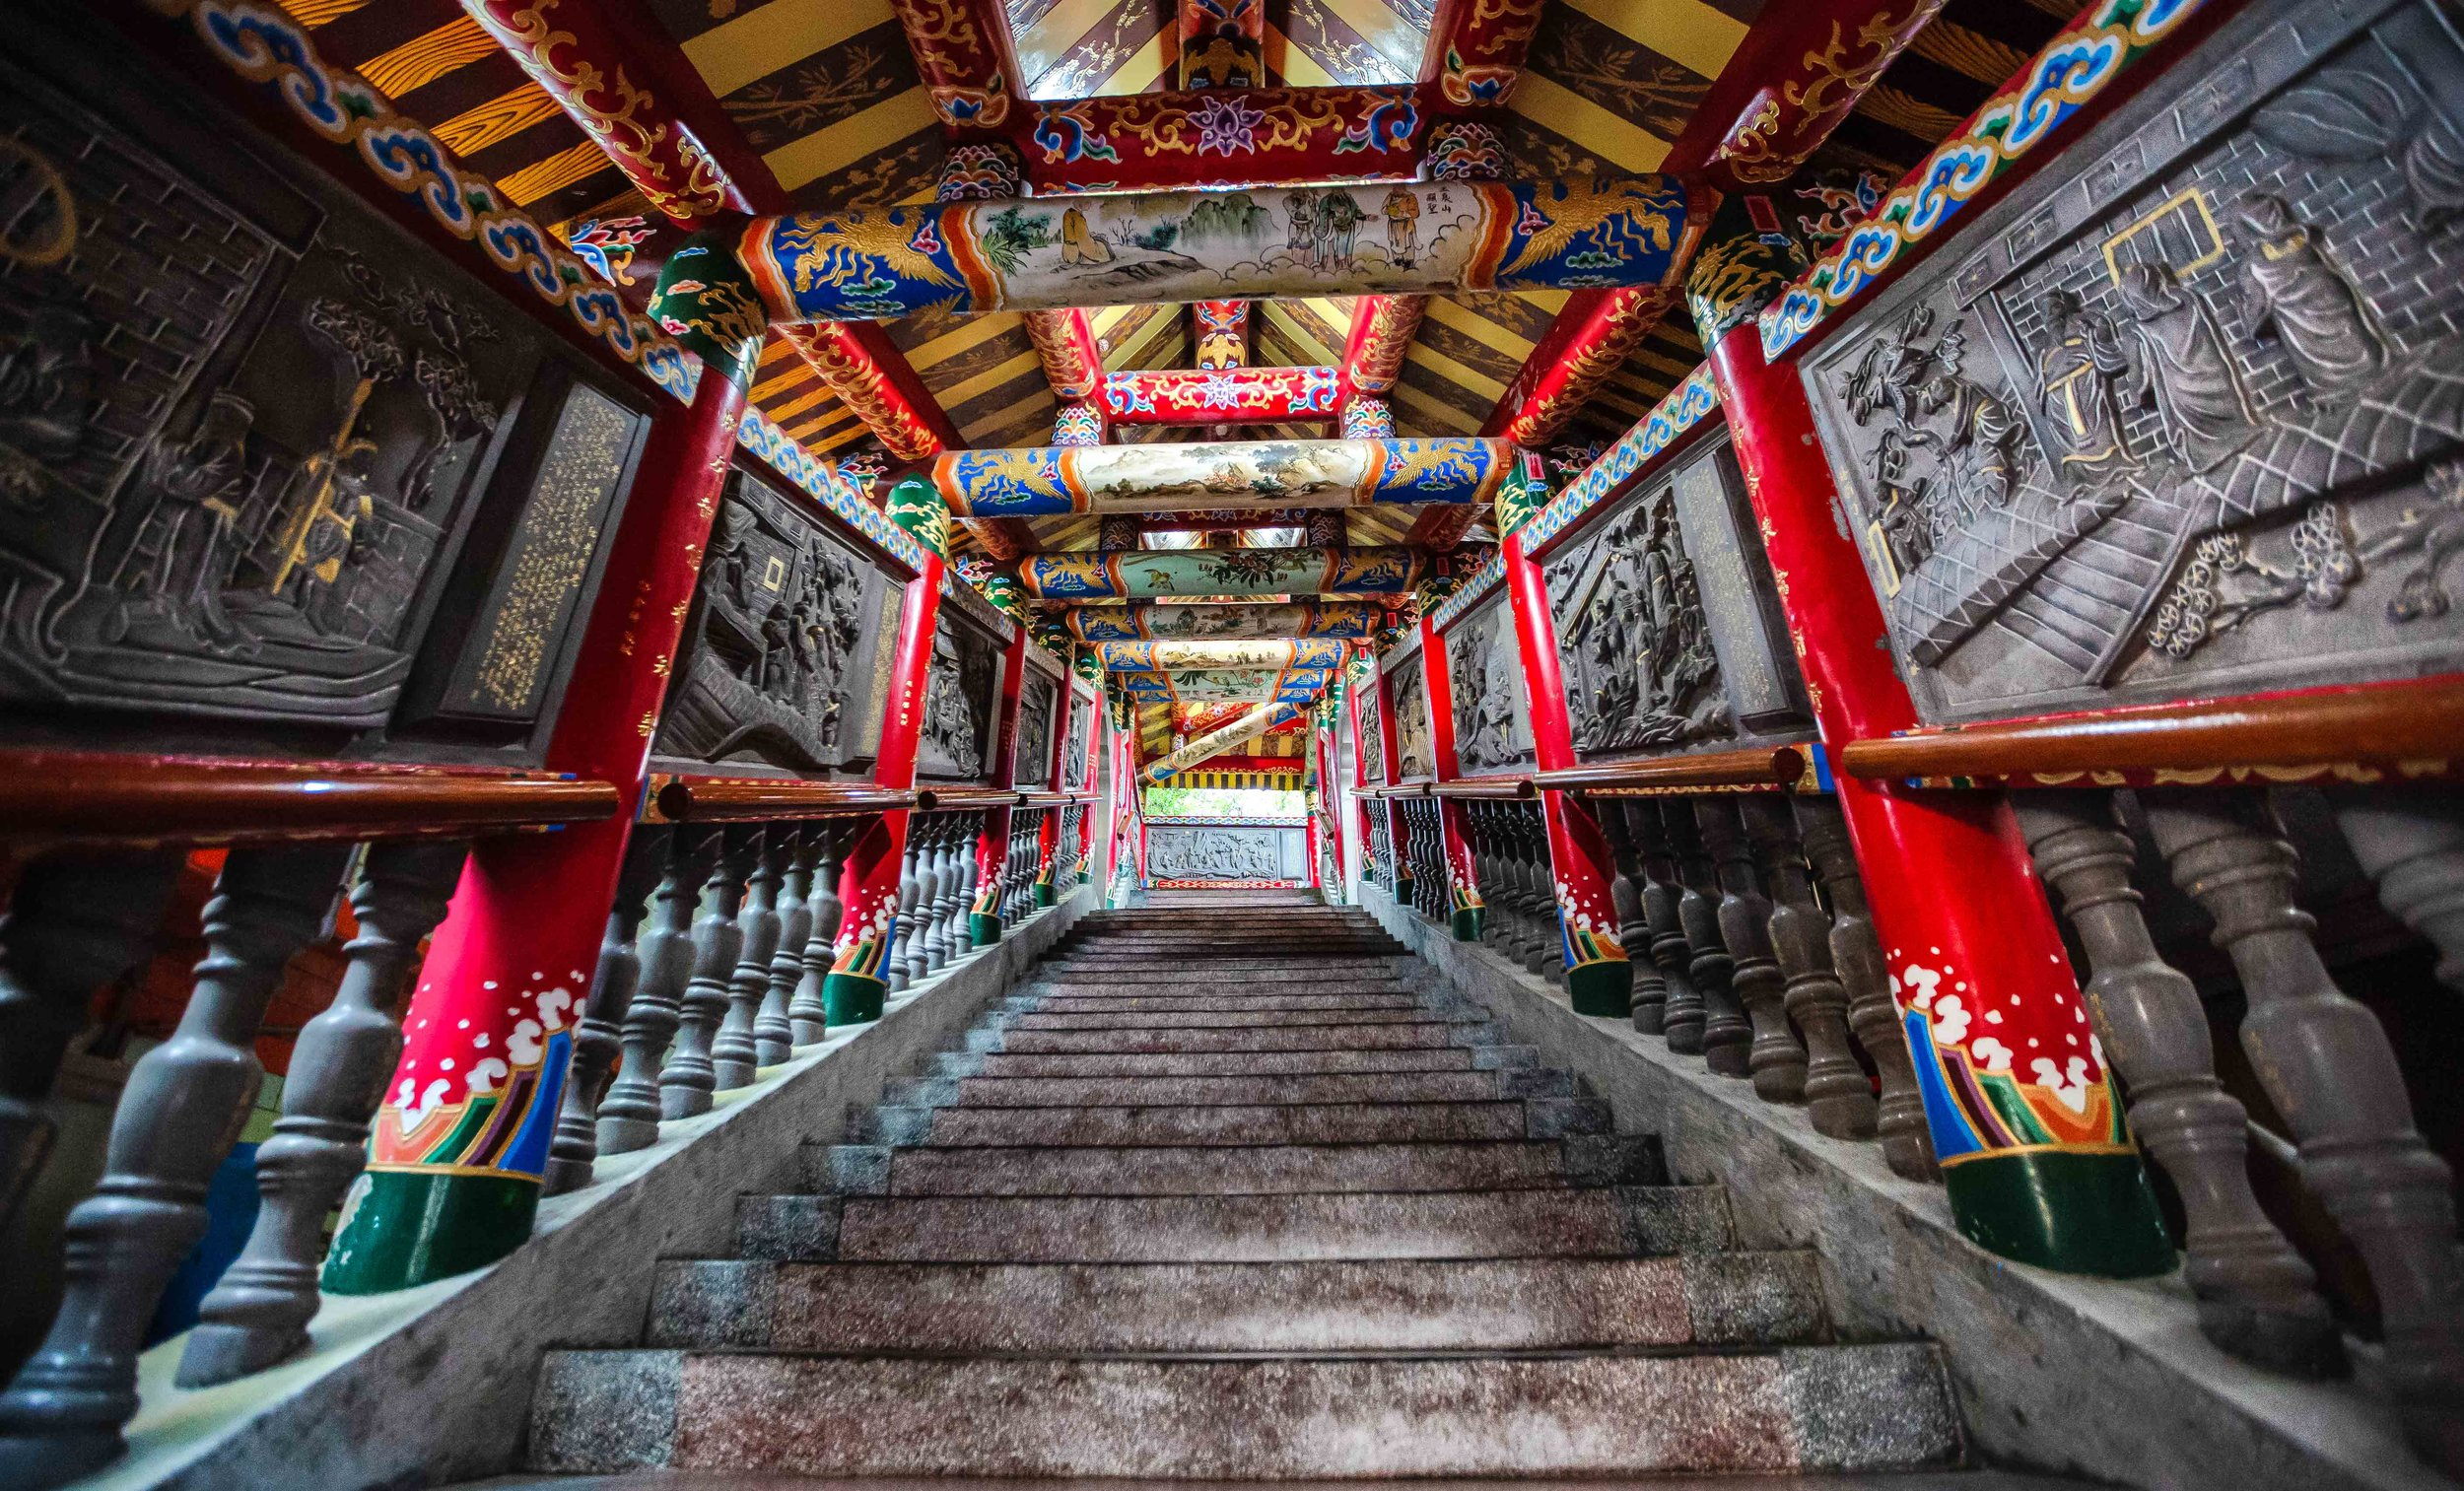 An Instagram hot spot - The beautiful stairs that lead up to the original shrine.